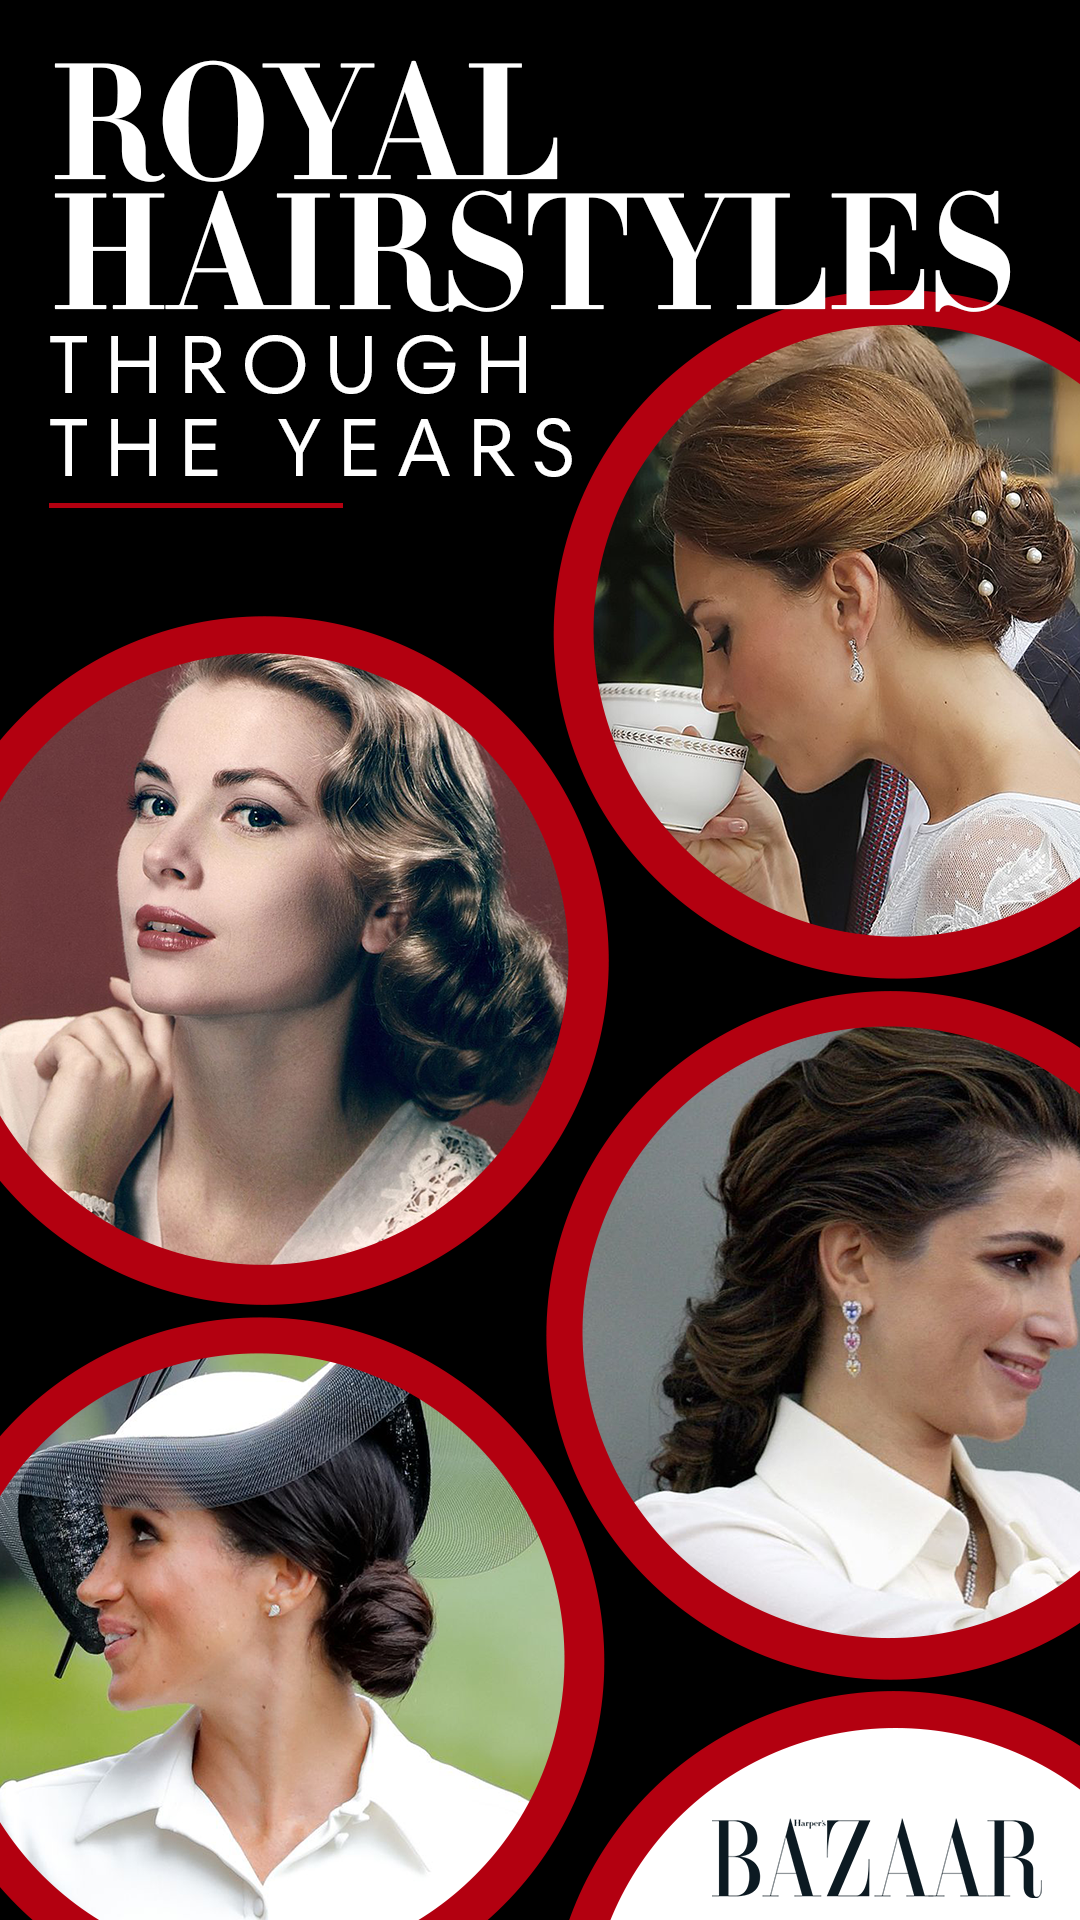 the best royal hairstyles through the years | created by ads